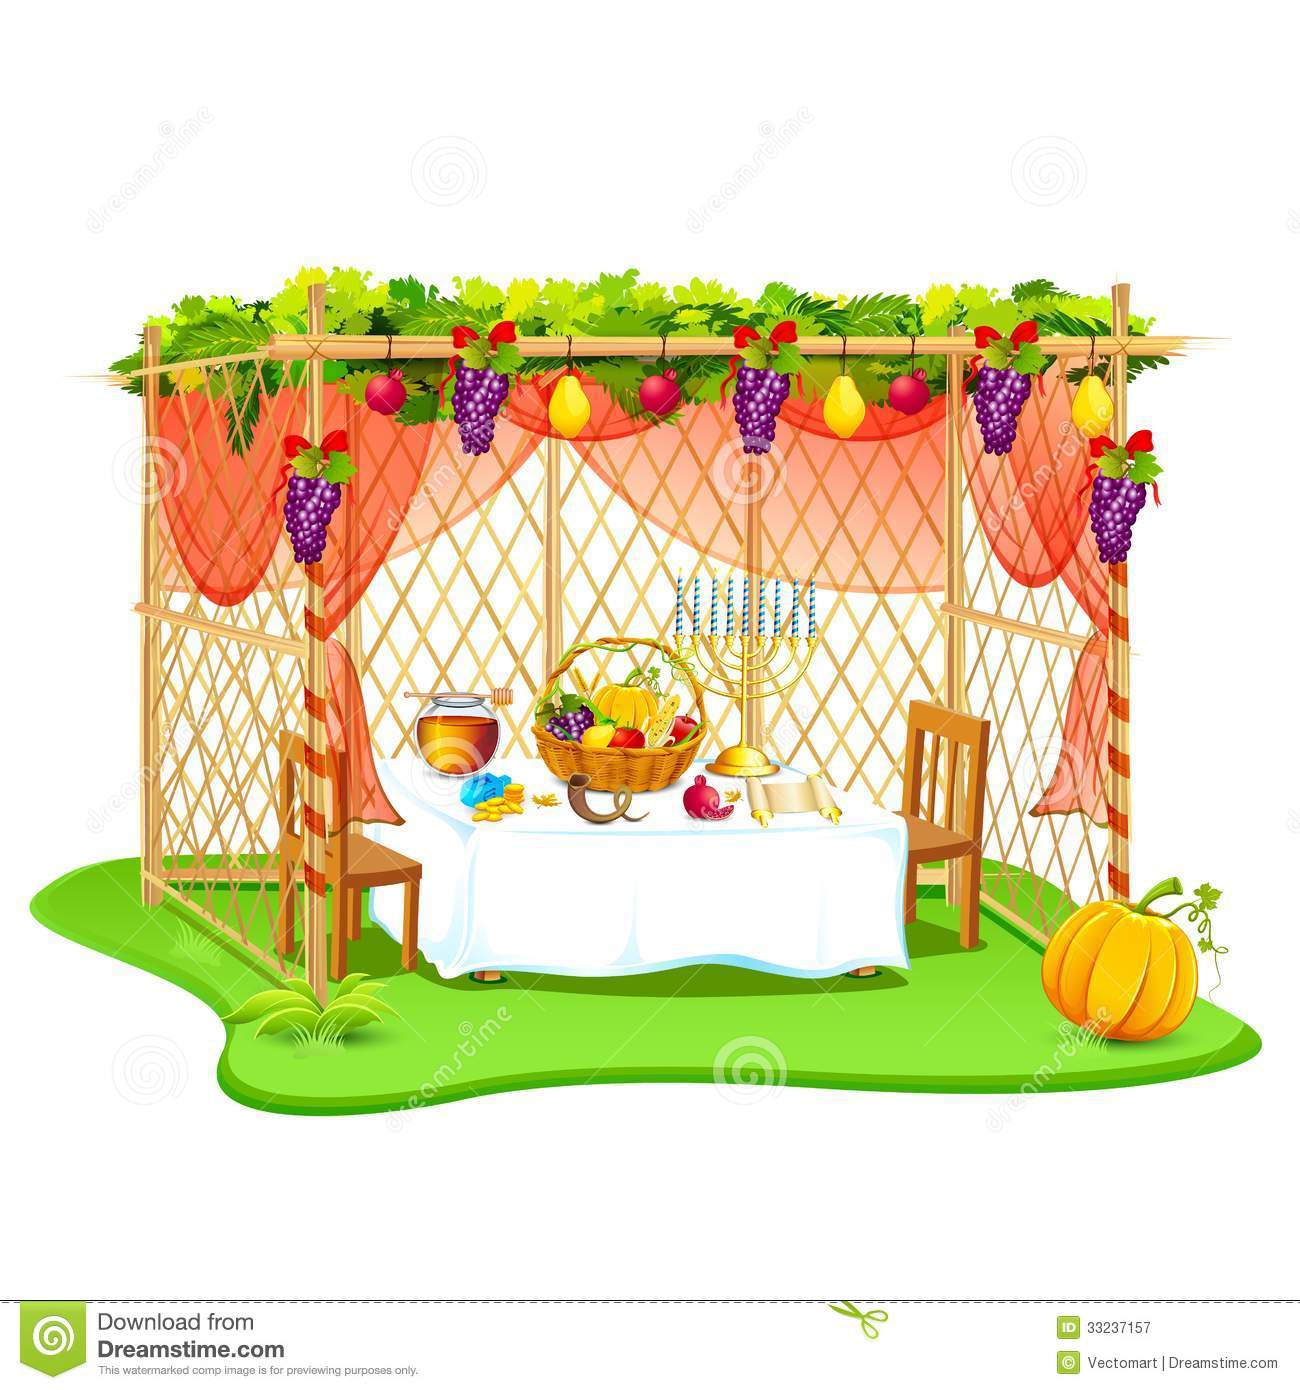 inJesus.com - Happy Sukkot (Feast of Tabernacles)